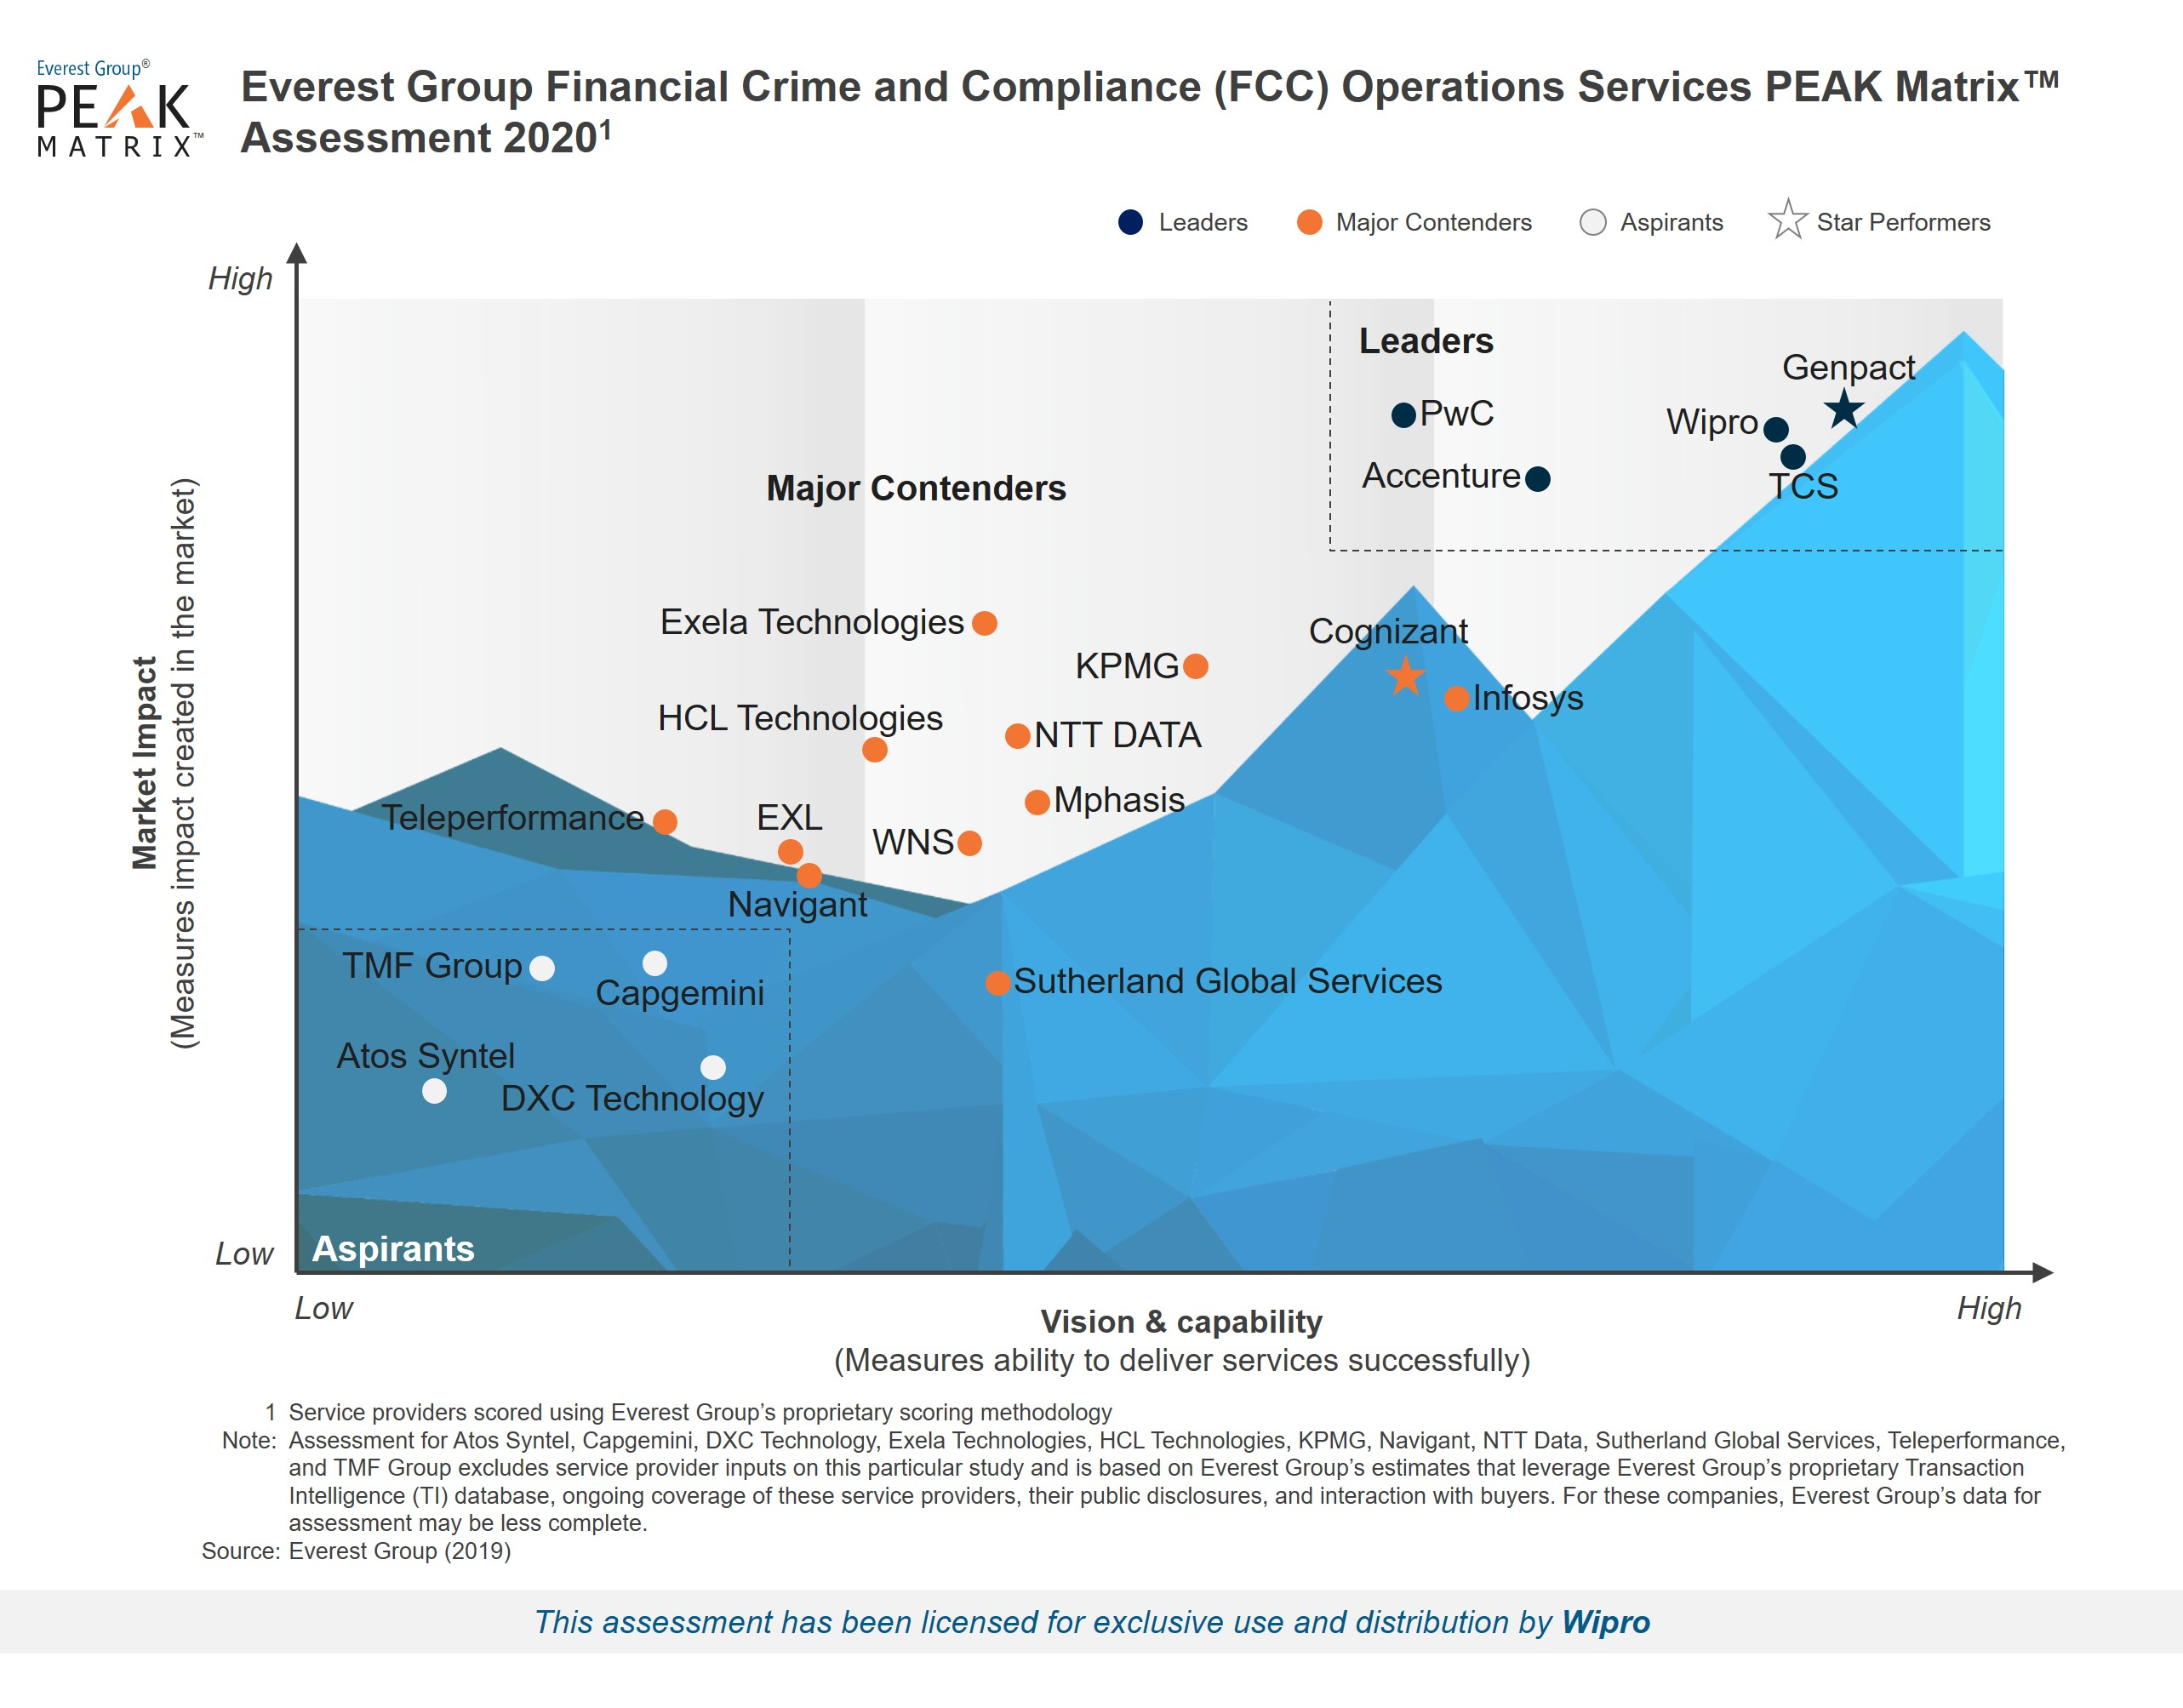 Wipro recognized as a Leader in Everest Group's Financial Crime and Compliance (FCC) Operations Services PEAK Matrix Assessment and Service Provider Landscape 2020